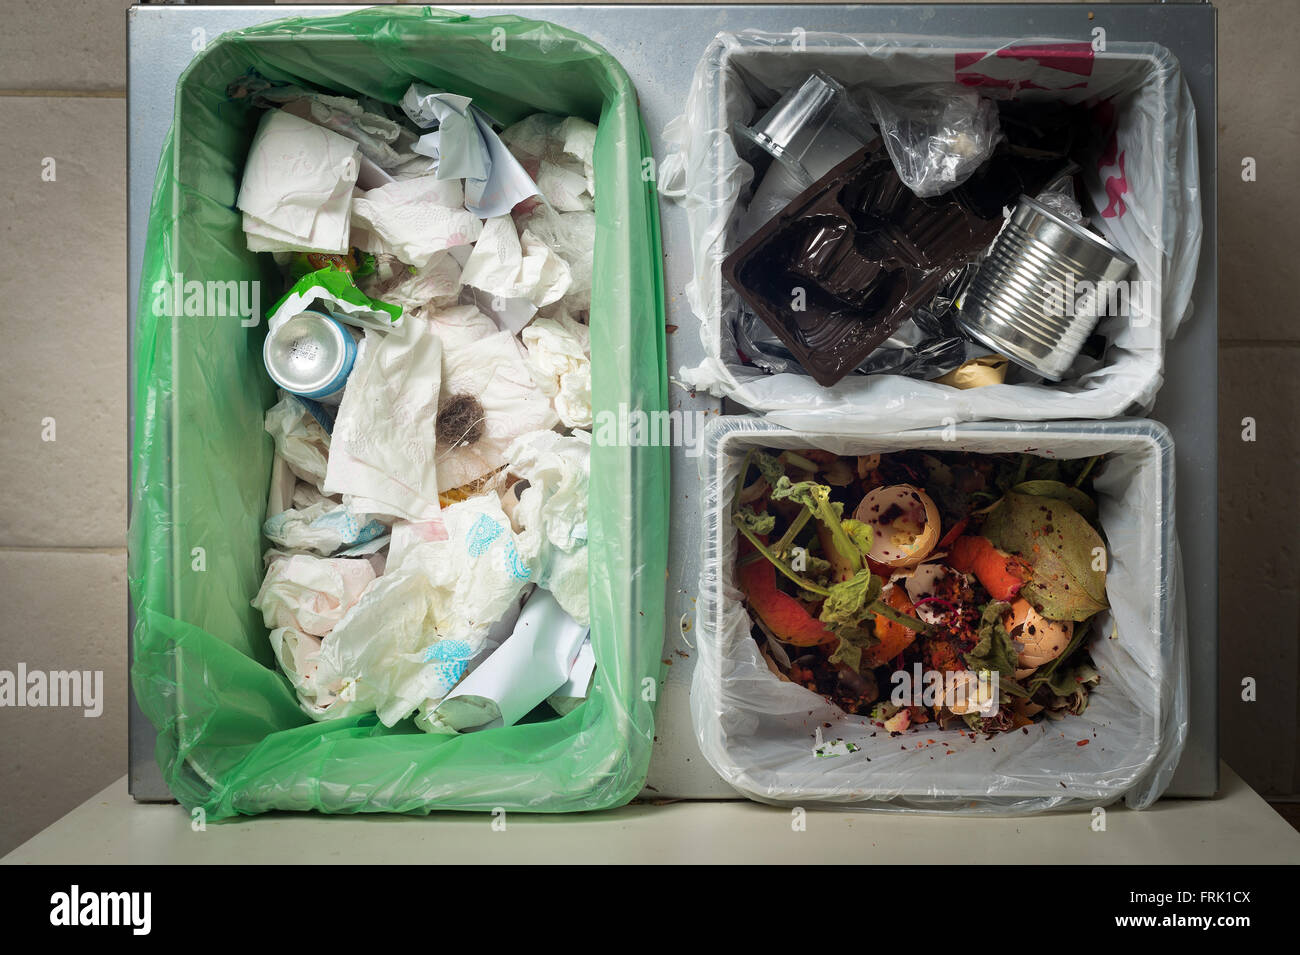 Household waste sorting and recycling kitchen bins in the drawer. Environmentally responsible behavior concept, Stock Photo